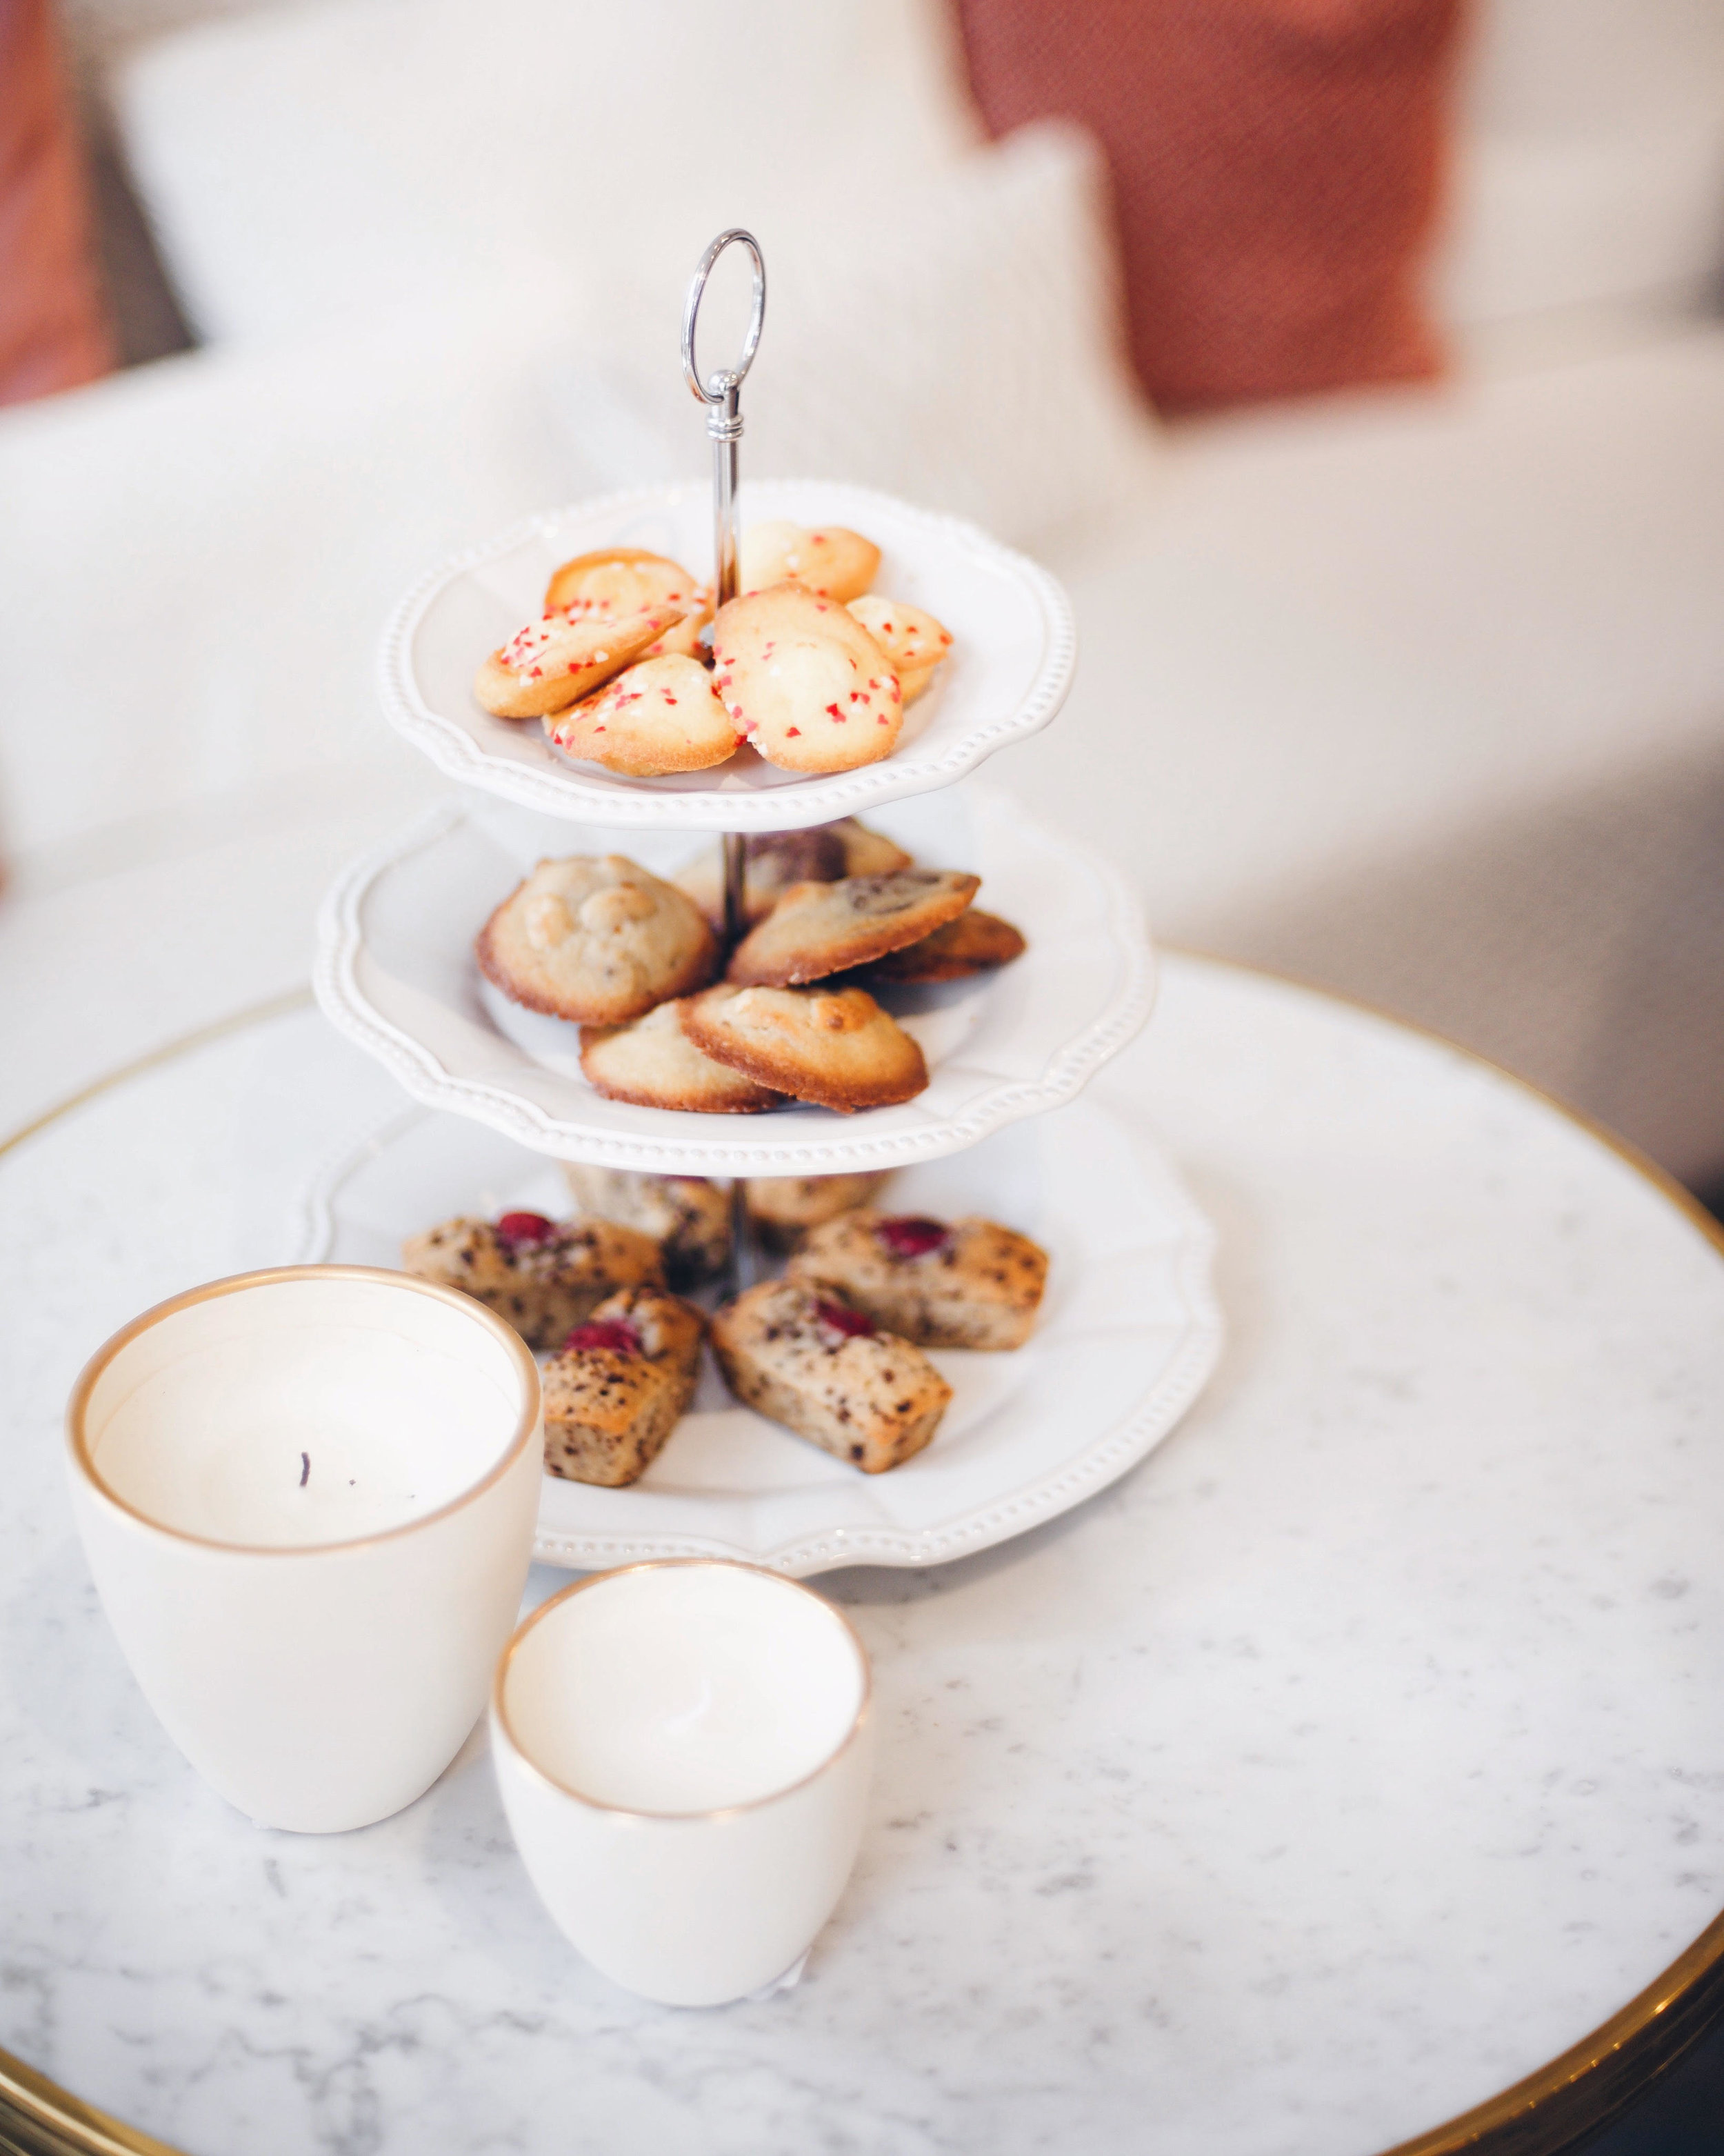 Copy of Cookies and Coffee